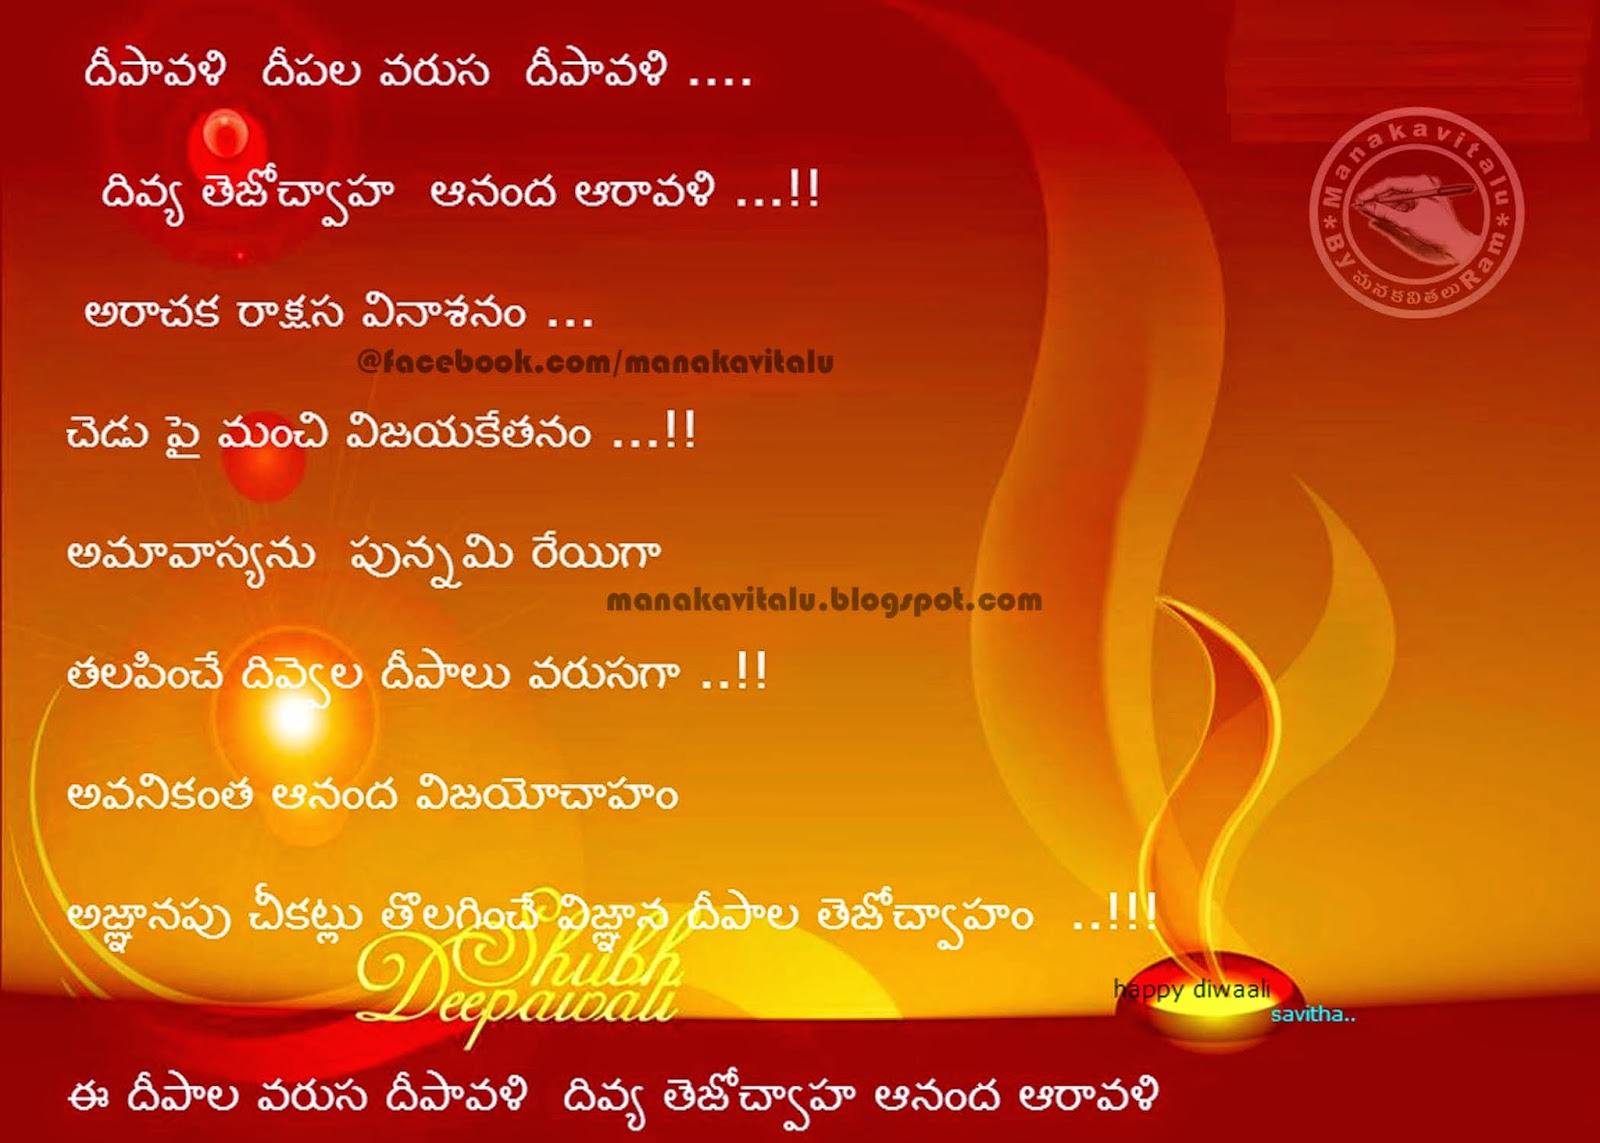 dipavali telugu kavitalu on images